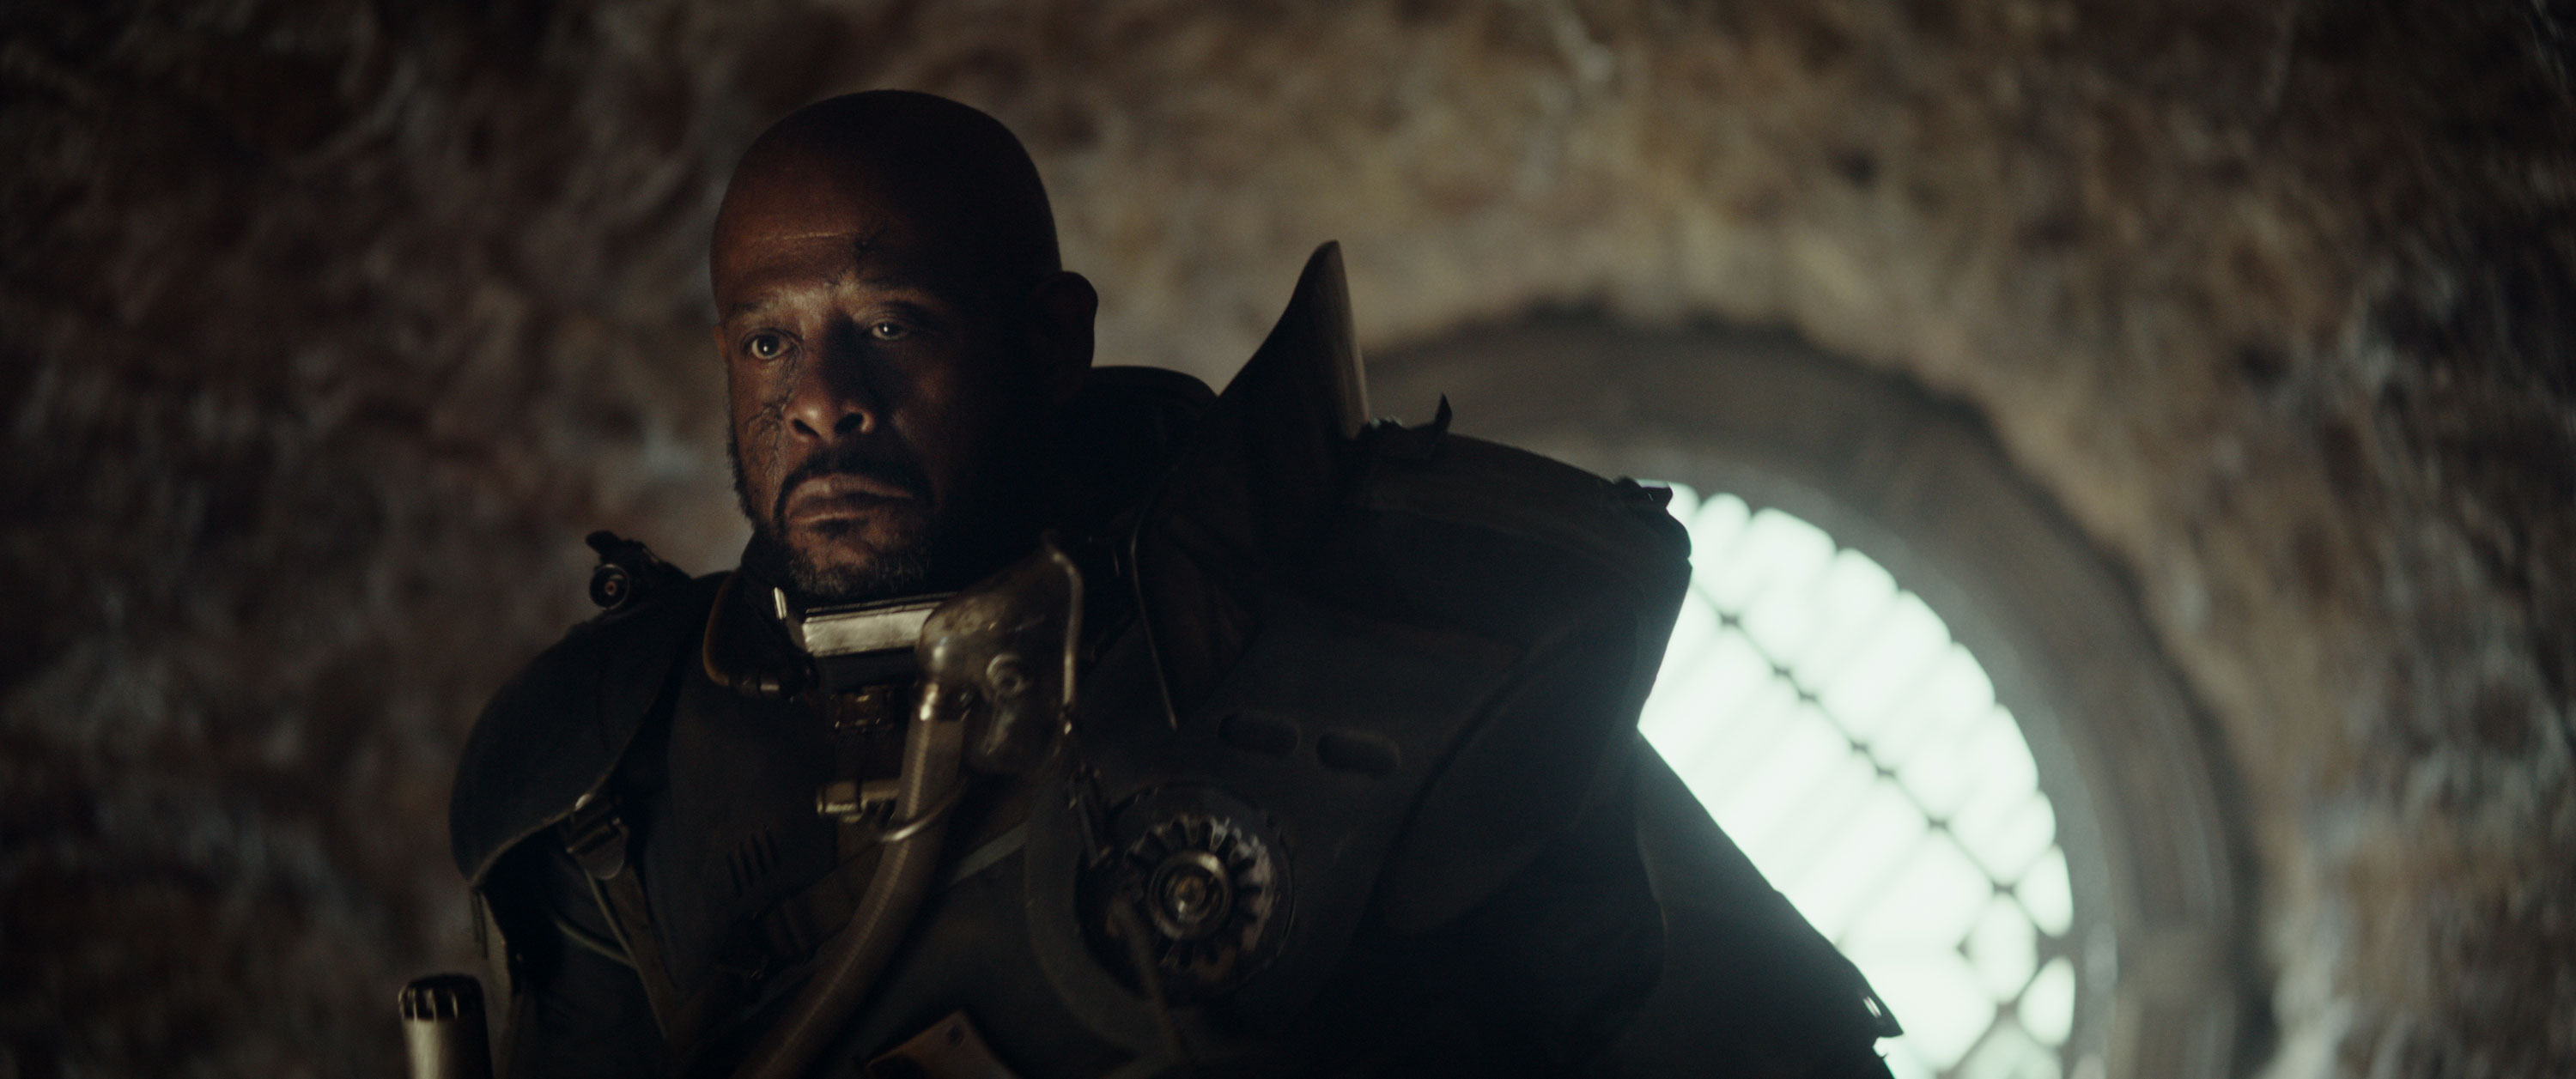 saw gerrera personnage character star wars rogue one story